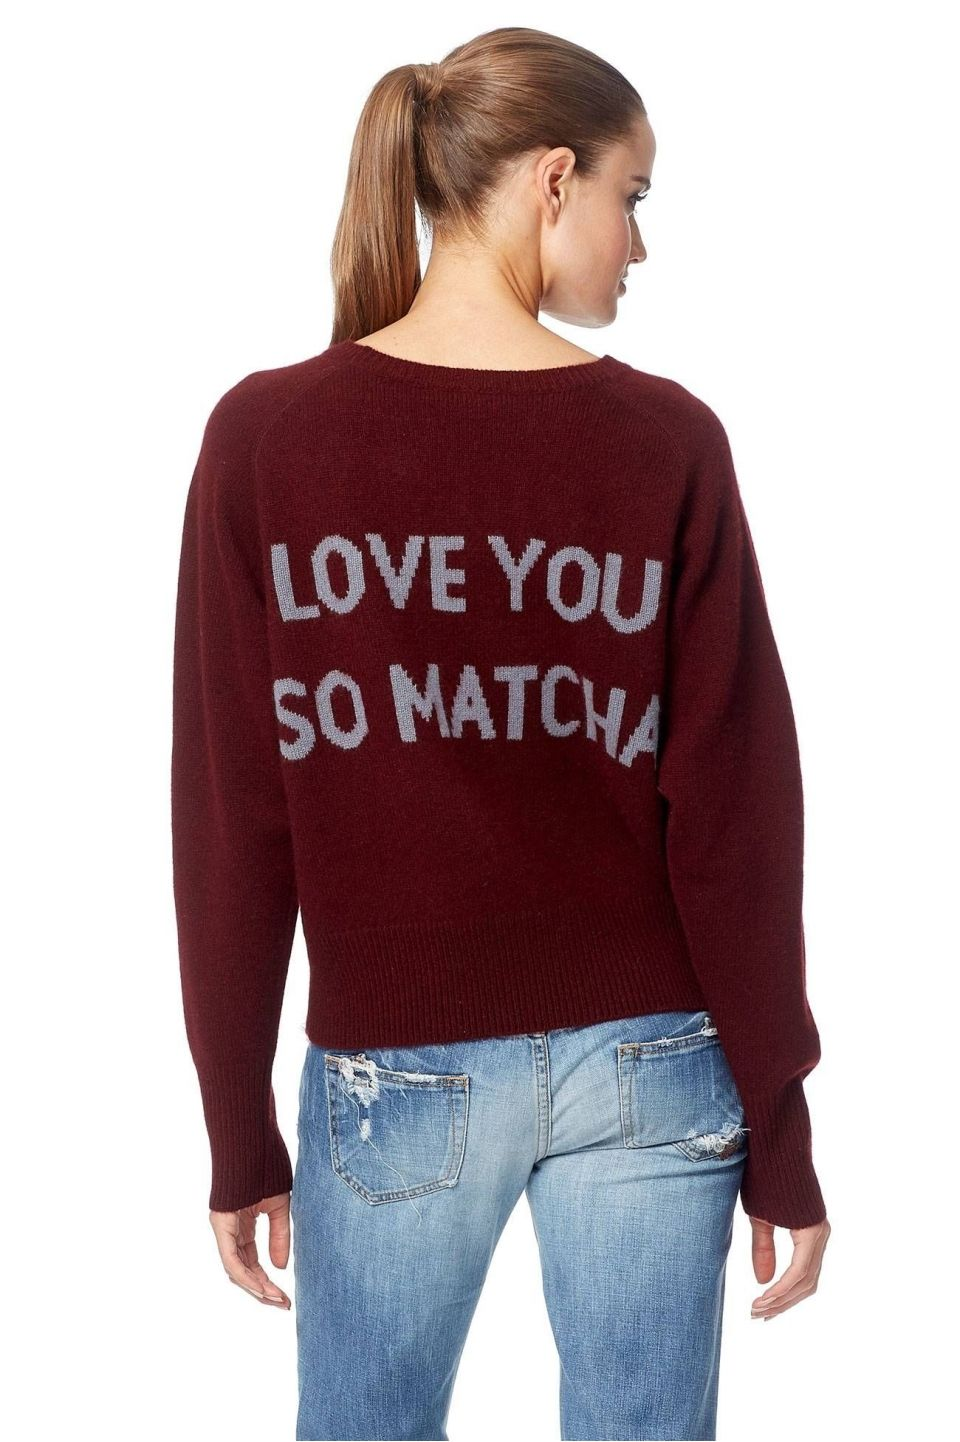 360 Cashmere I Love You Matcha Sweater   Burgundy/Grey